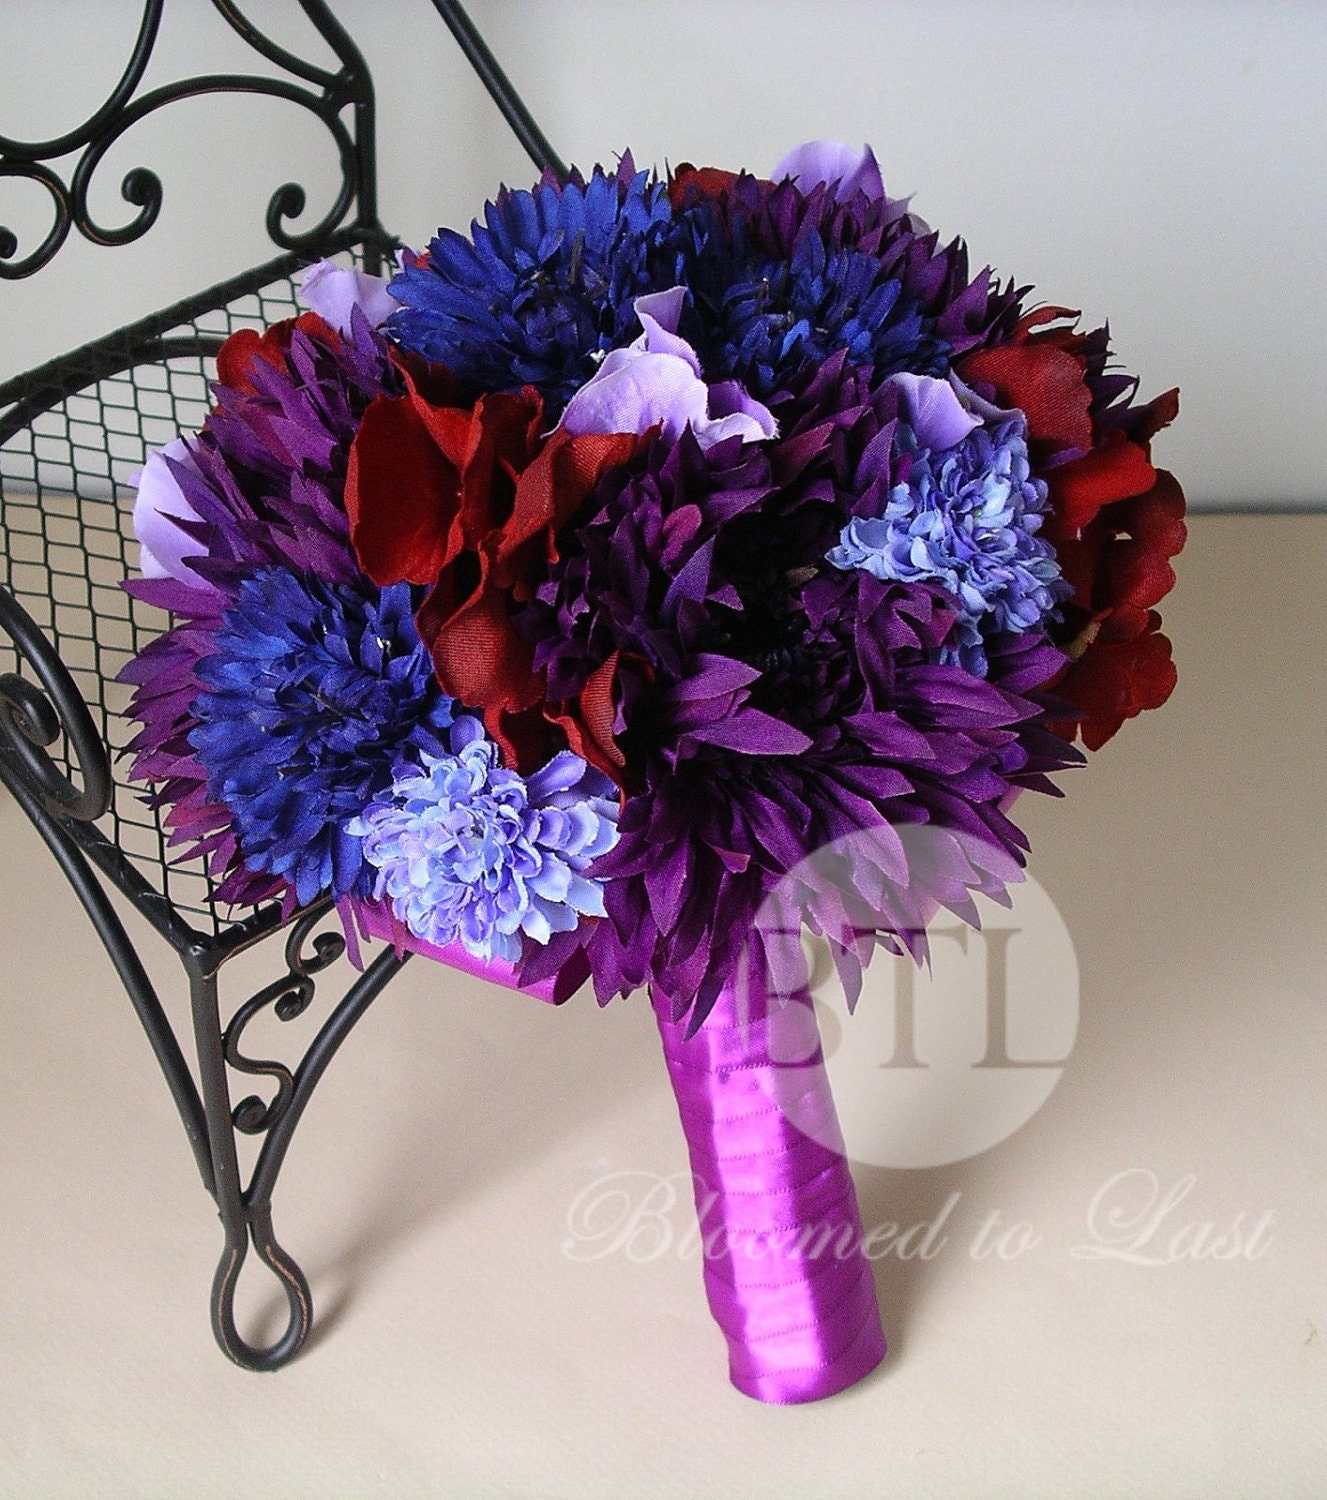 Jewel Tone Wedding Flowers: Purple Blue And Dark Red Jewel Tones Hand Tied By